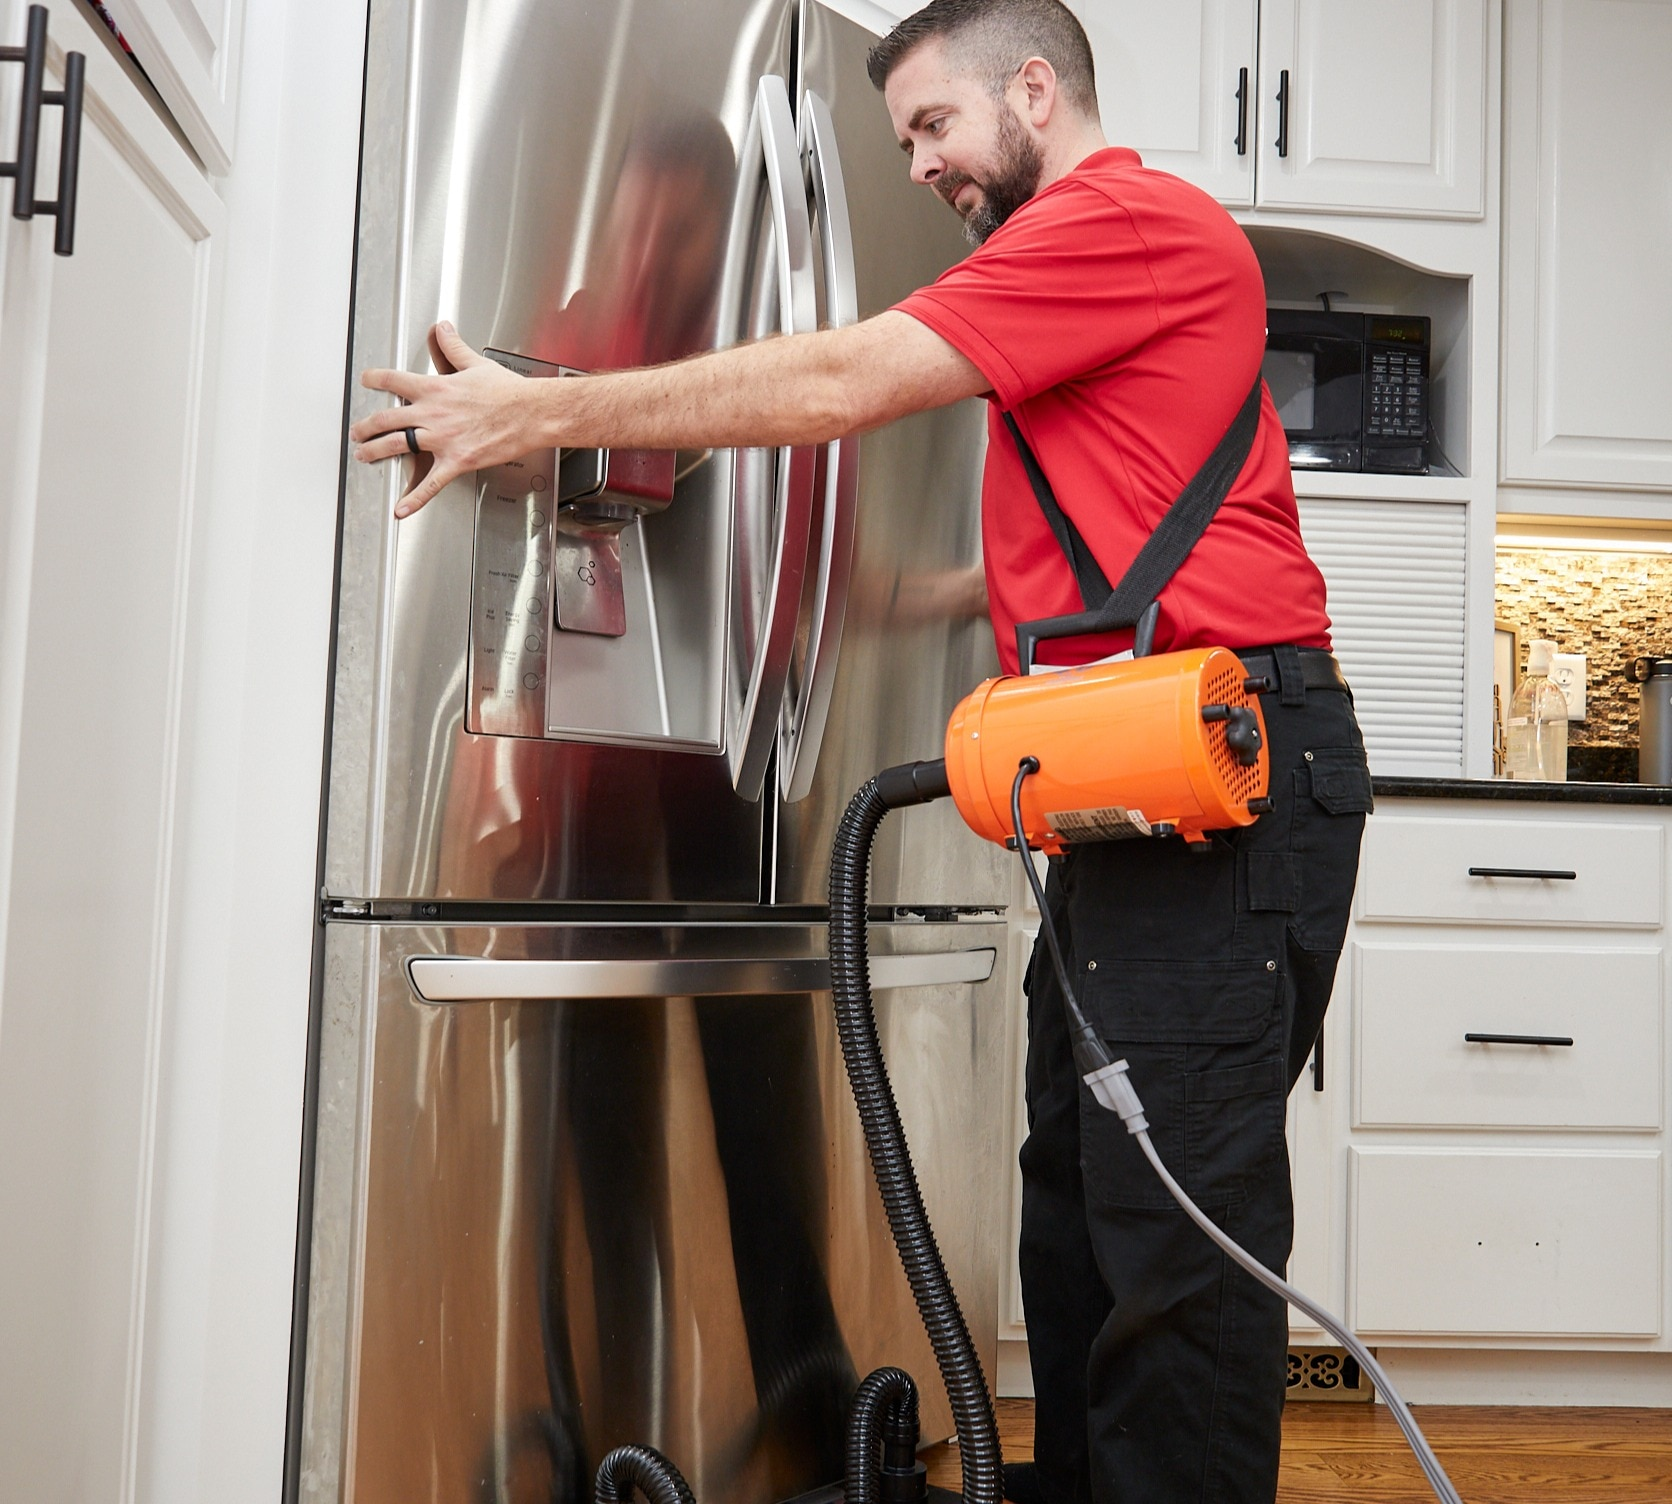 Moving Heavy Appliances with Airsled